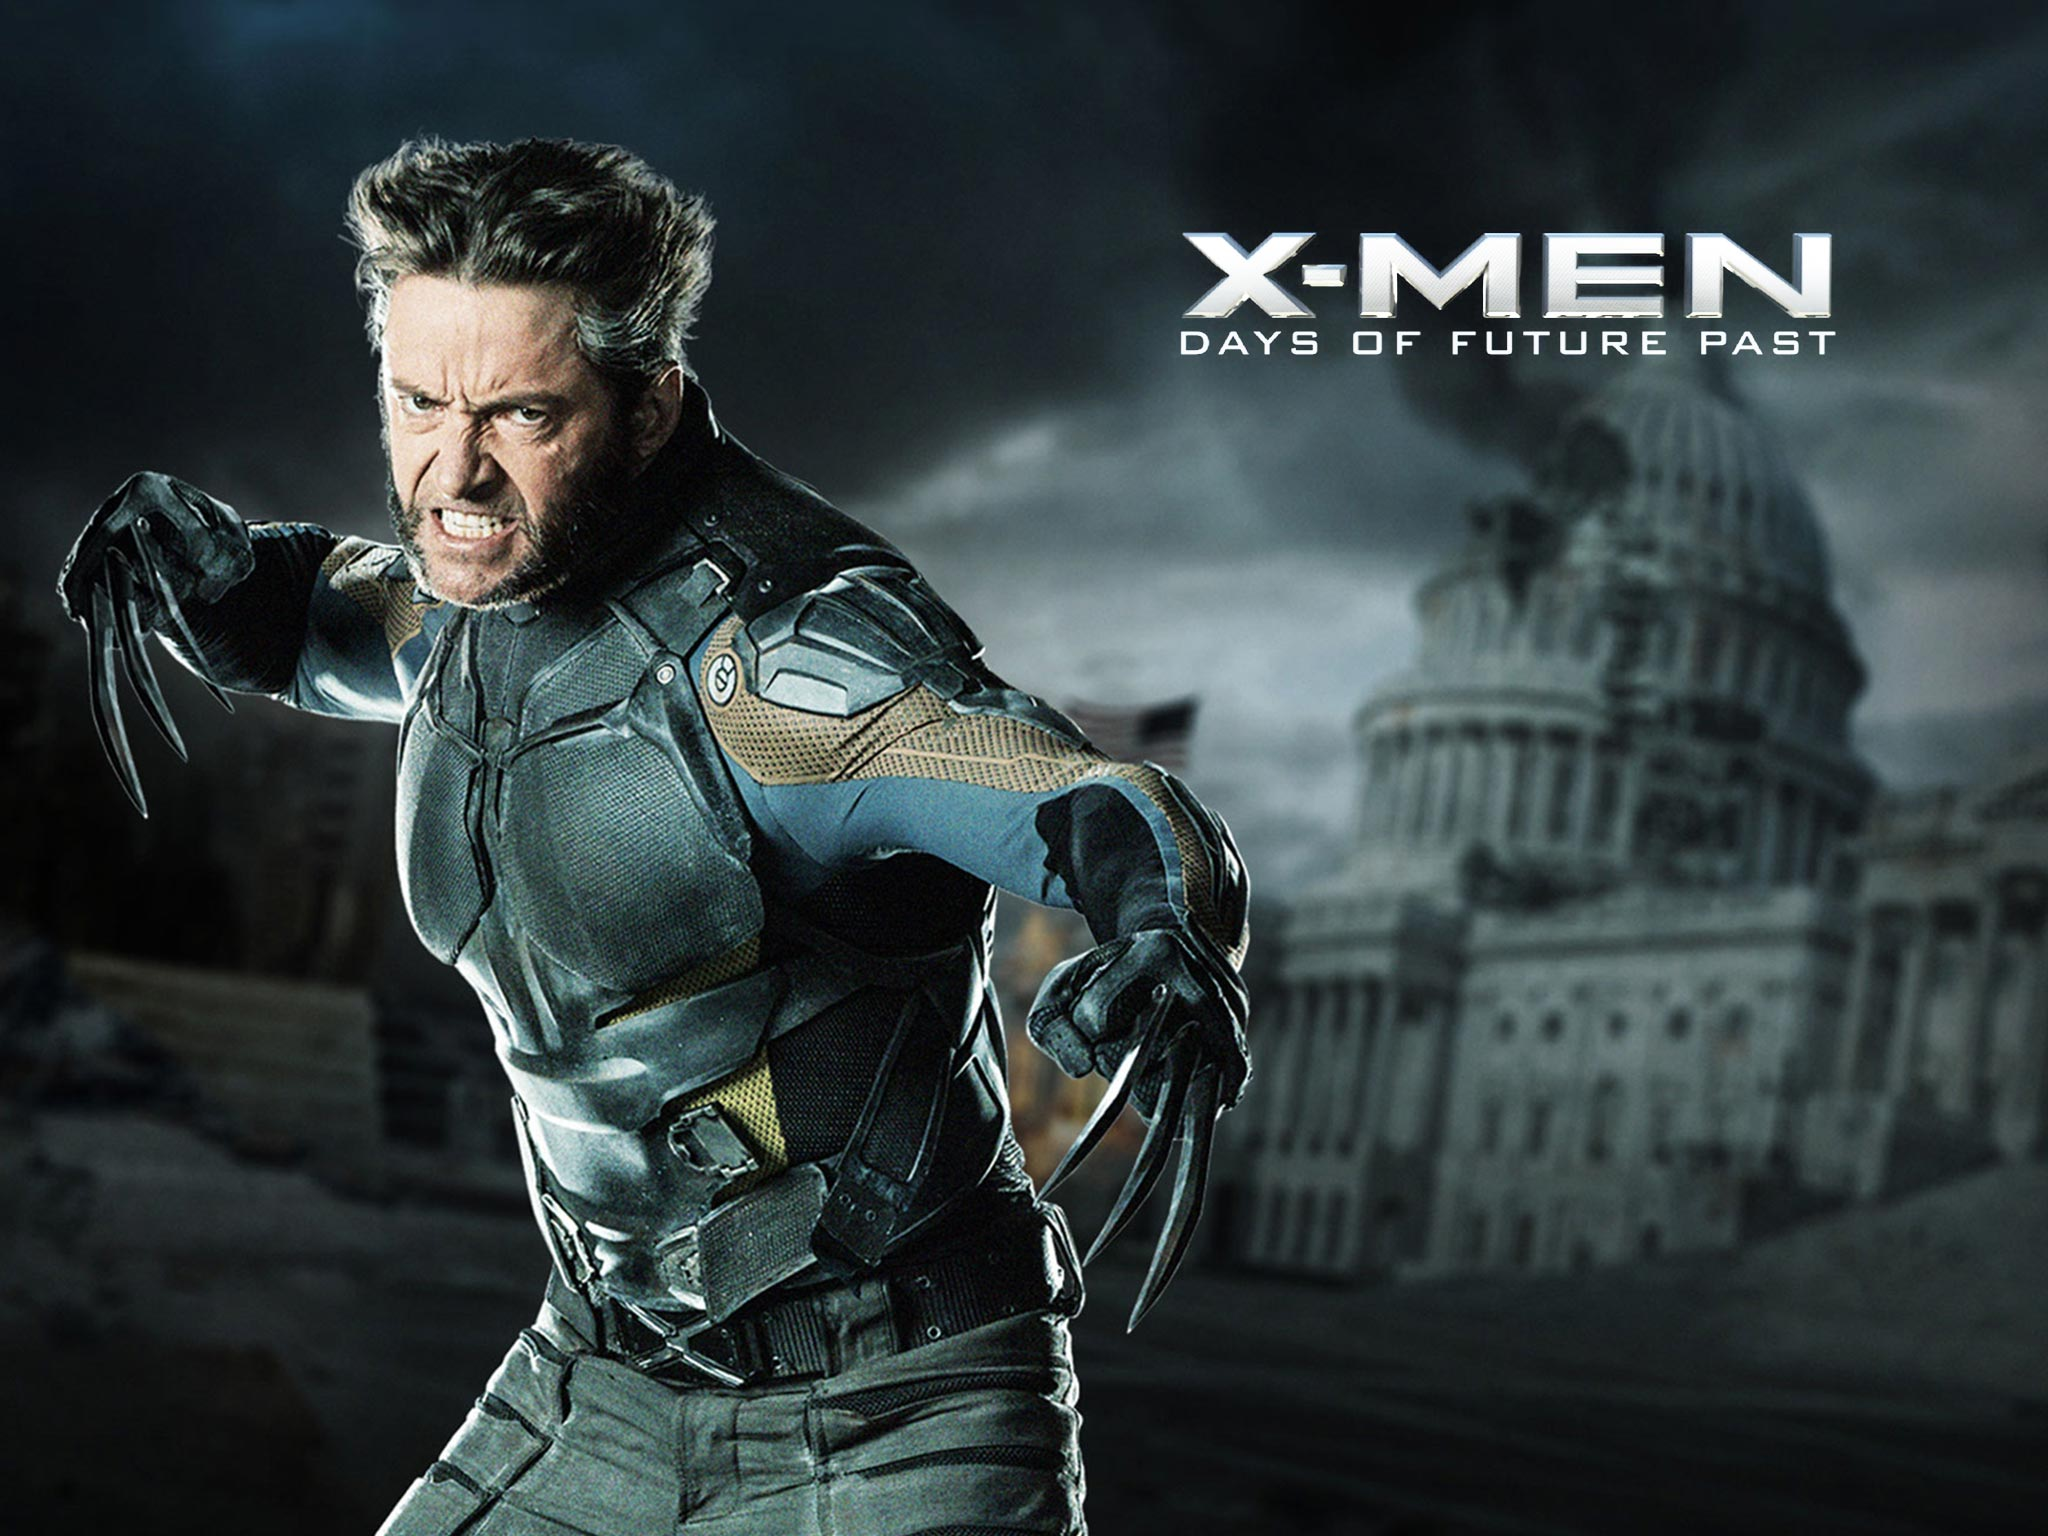 Men Days of Future Past Movie 2014 HD iPad iPhone Wallpapers 2048x1536